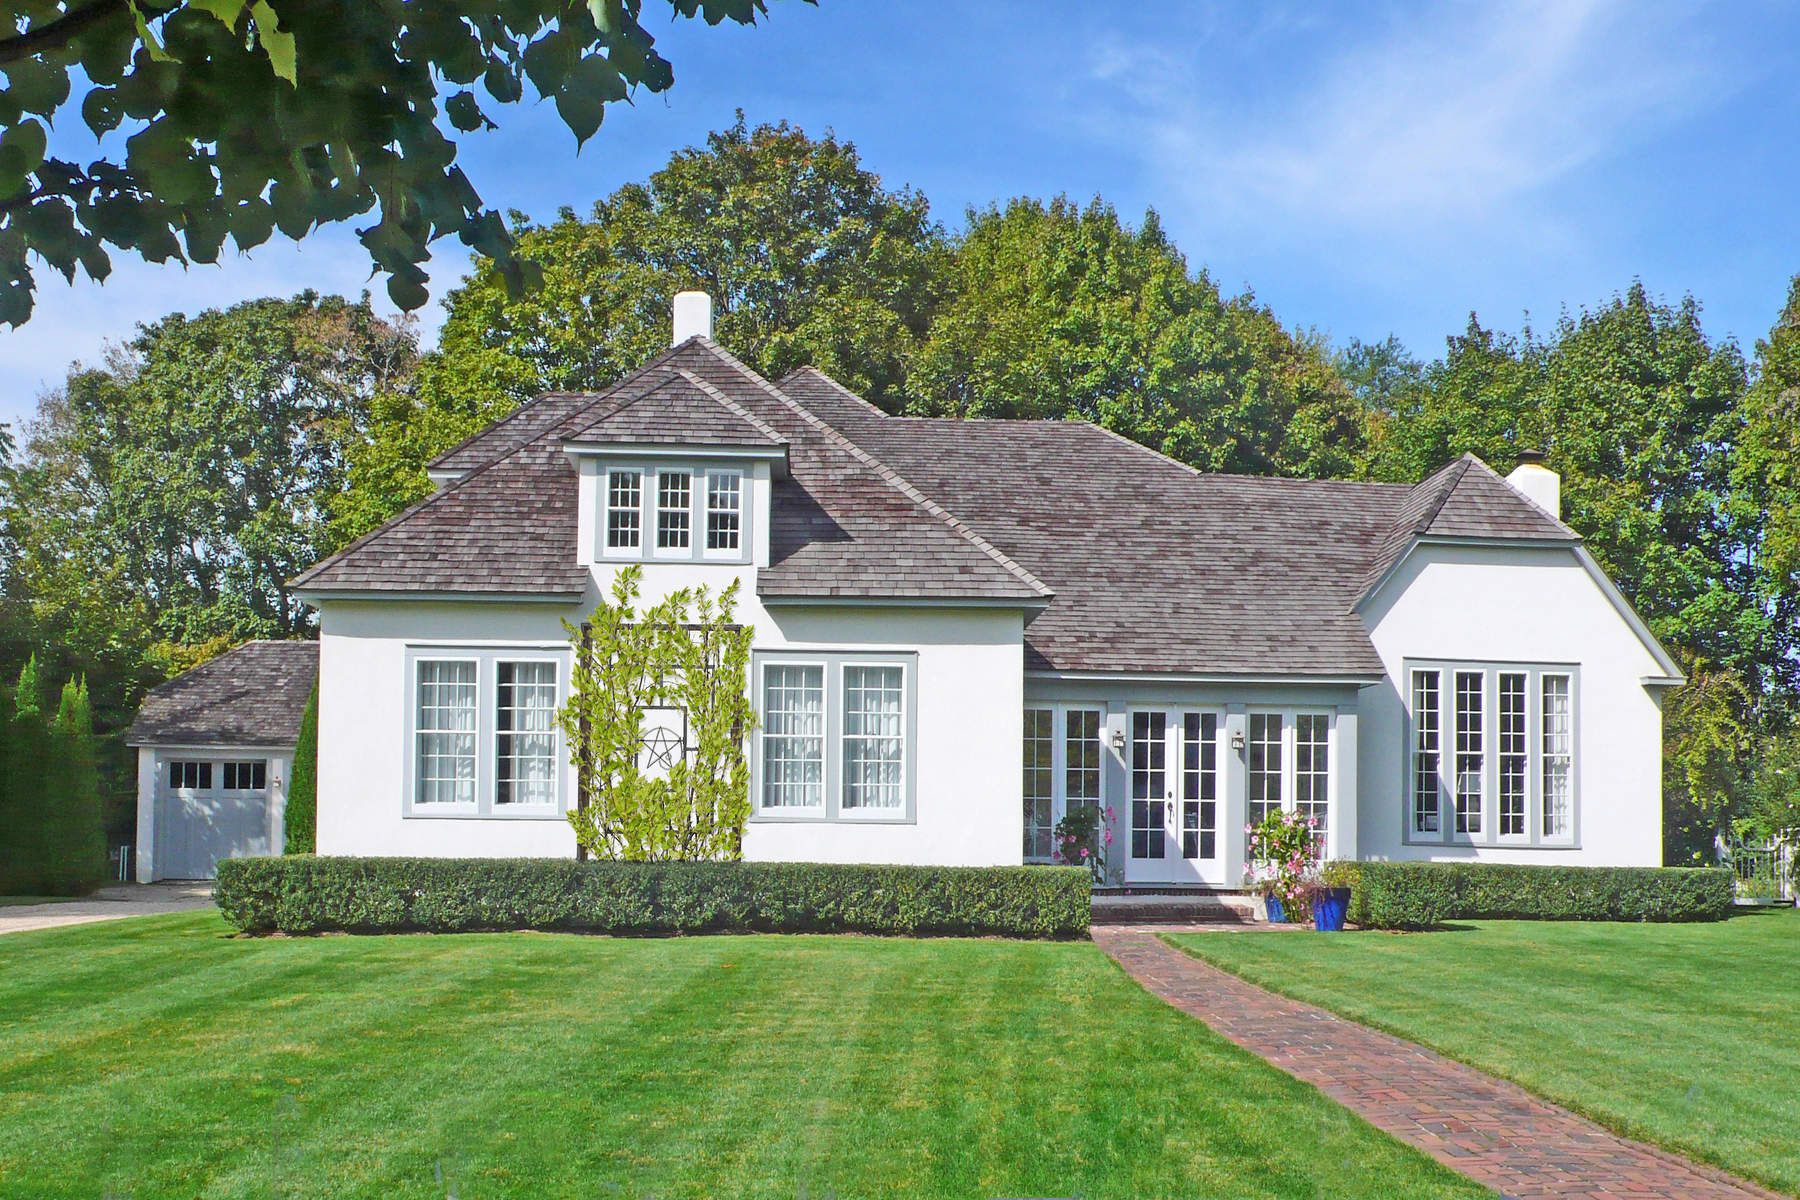 Single Family Home for Rent at Iconic Main Street Residence 208 Main Street Sag Harbor, New York 11963 United States